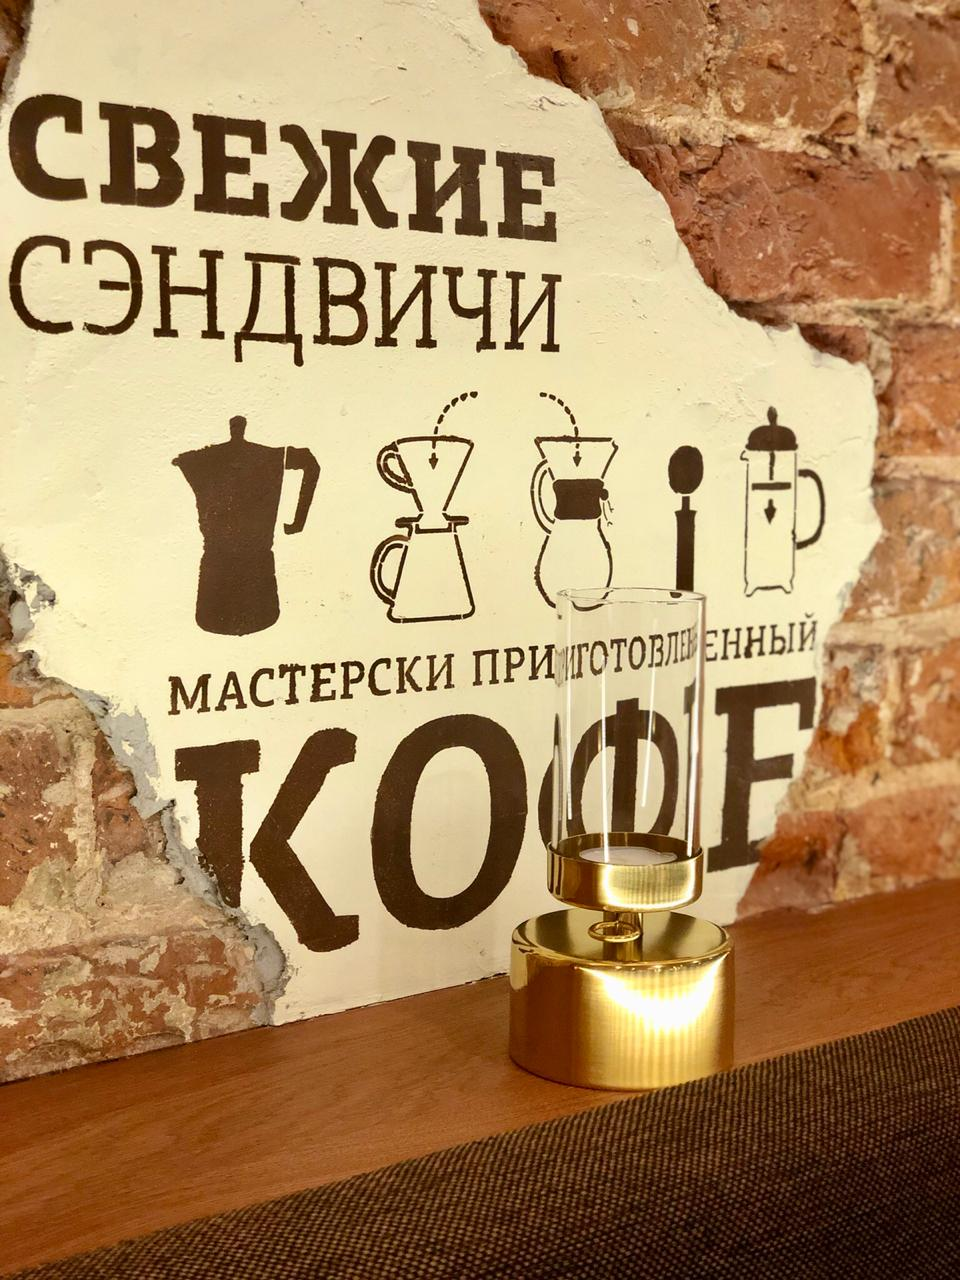 Moscow, meet another coffee shop!